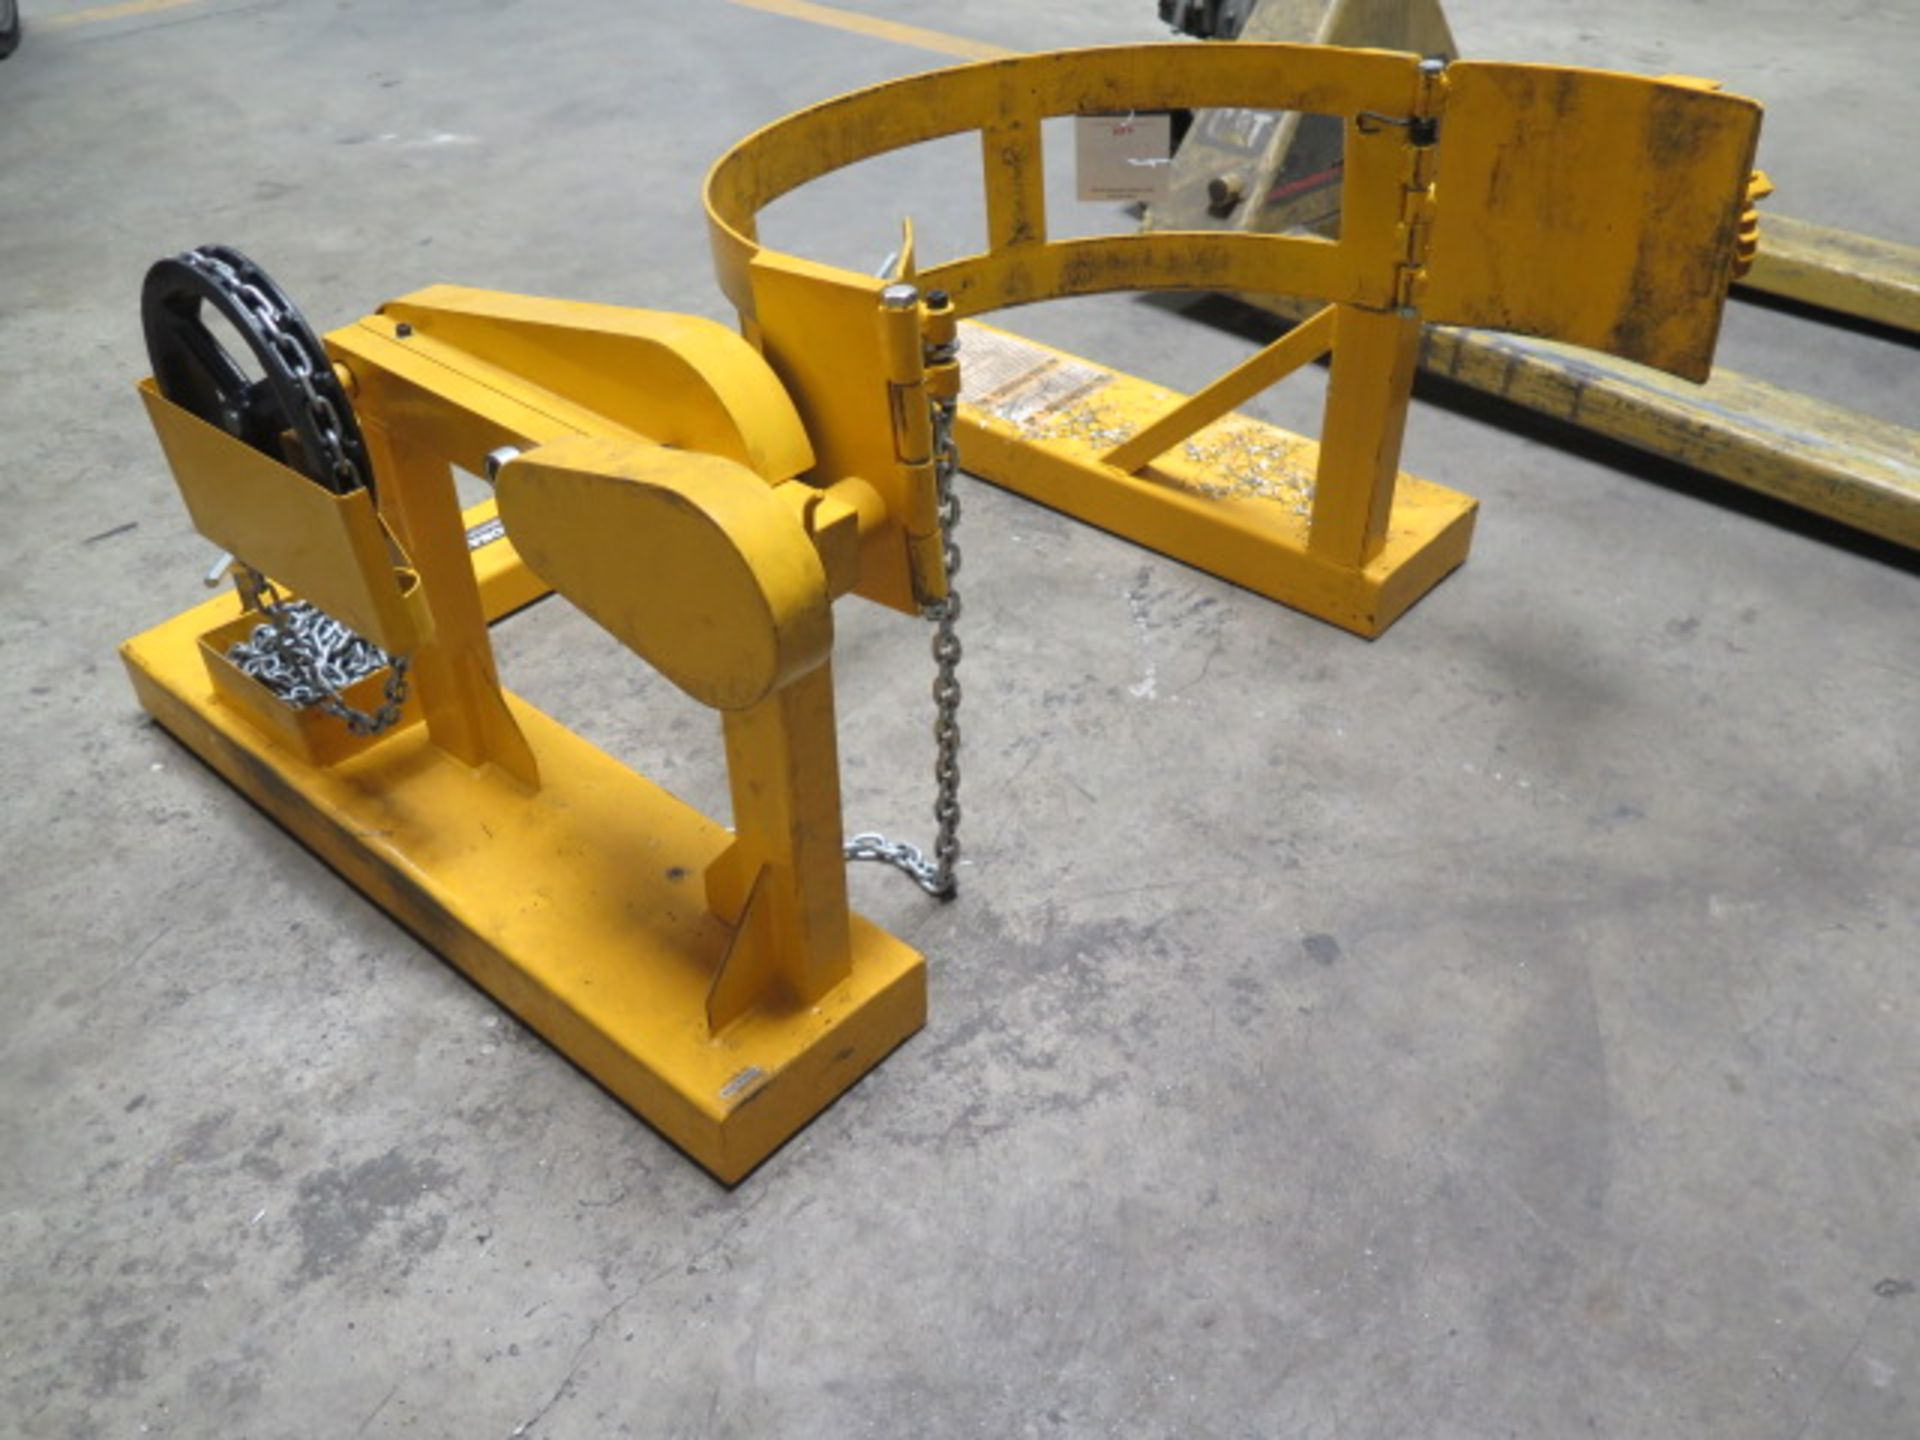 Global Barrel Turner Forklift Attachment (SOLD AS-IS - NO WARRANTY) - Image 3 of 5